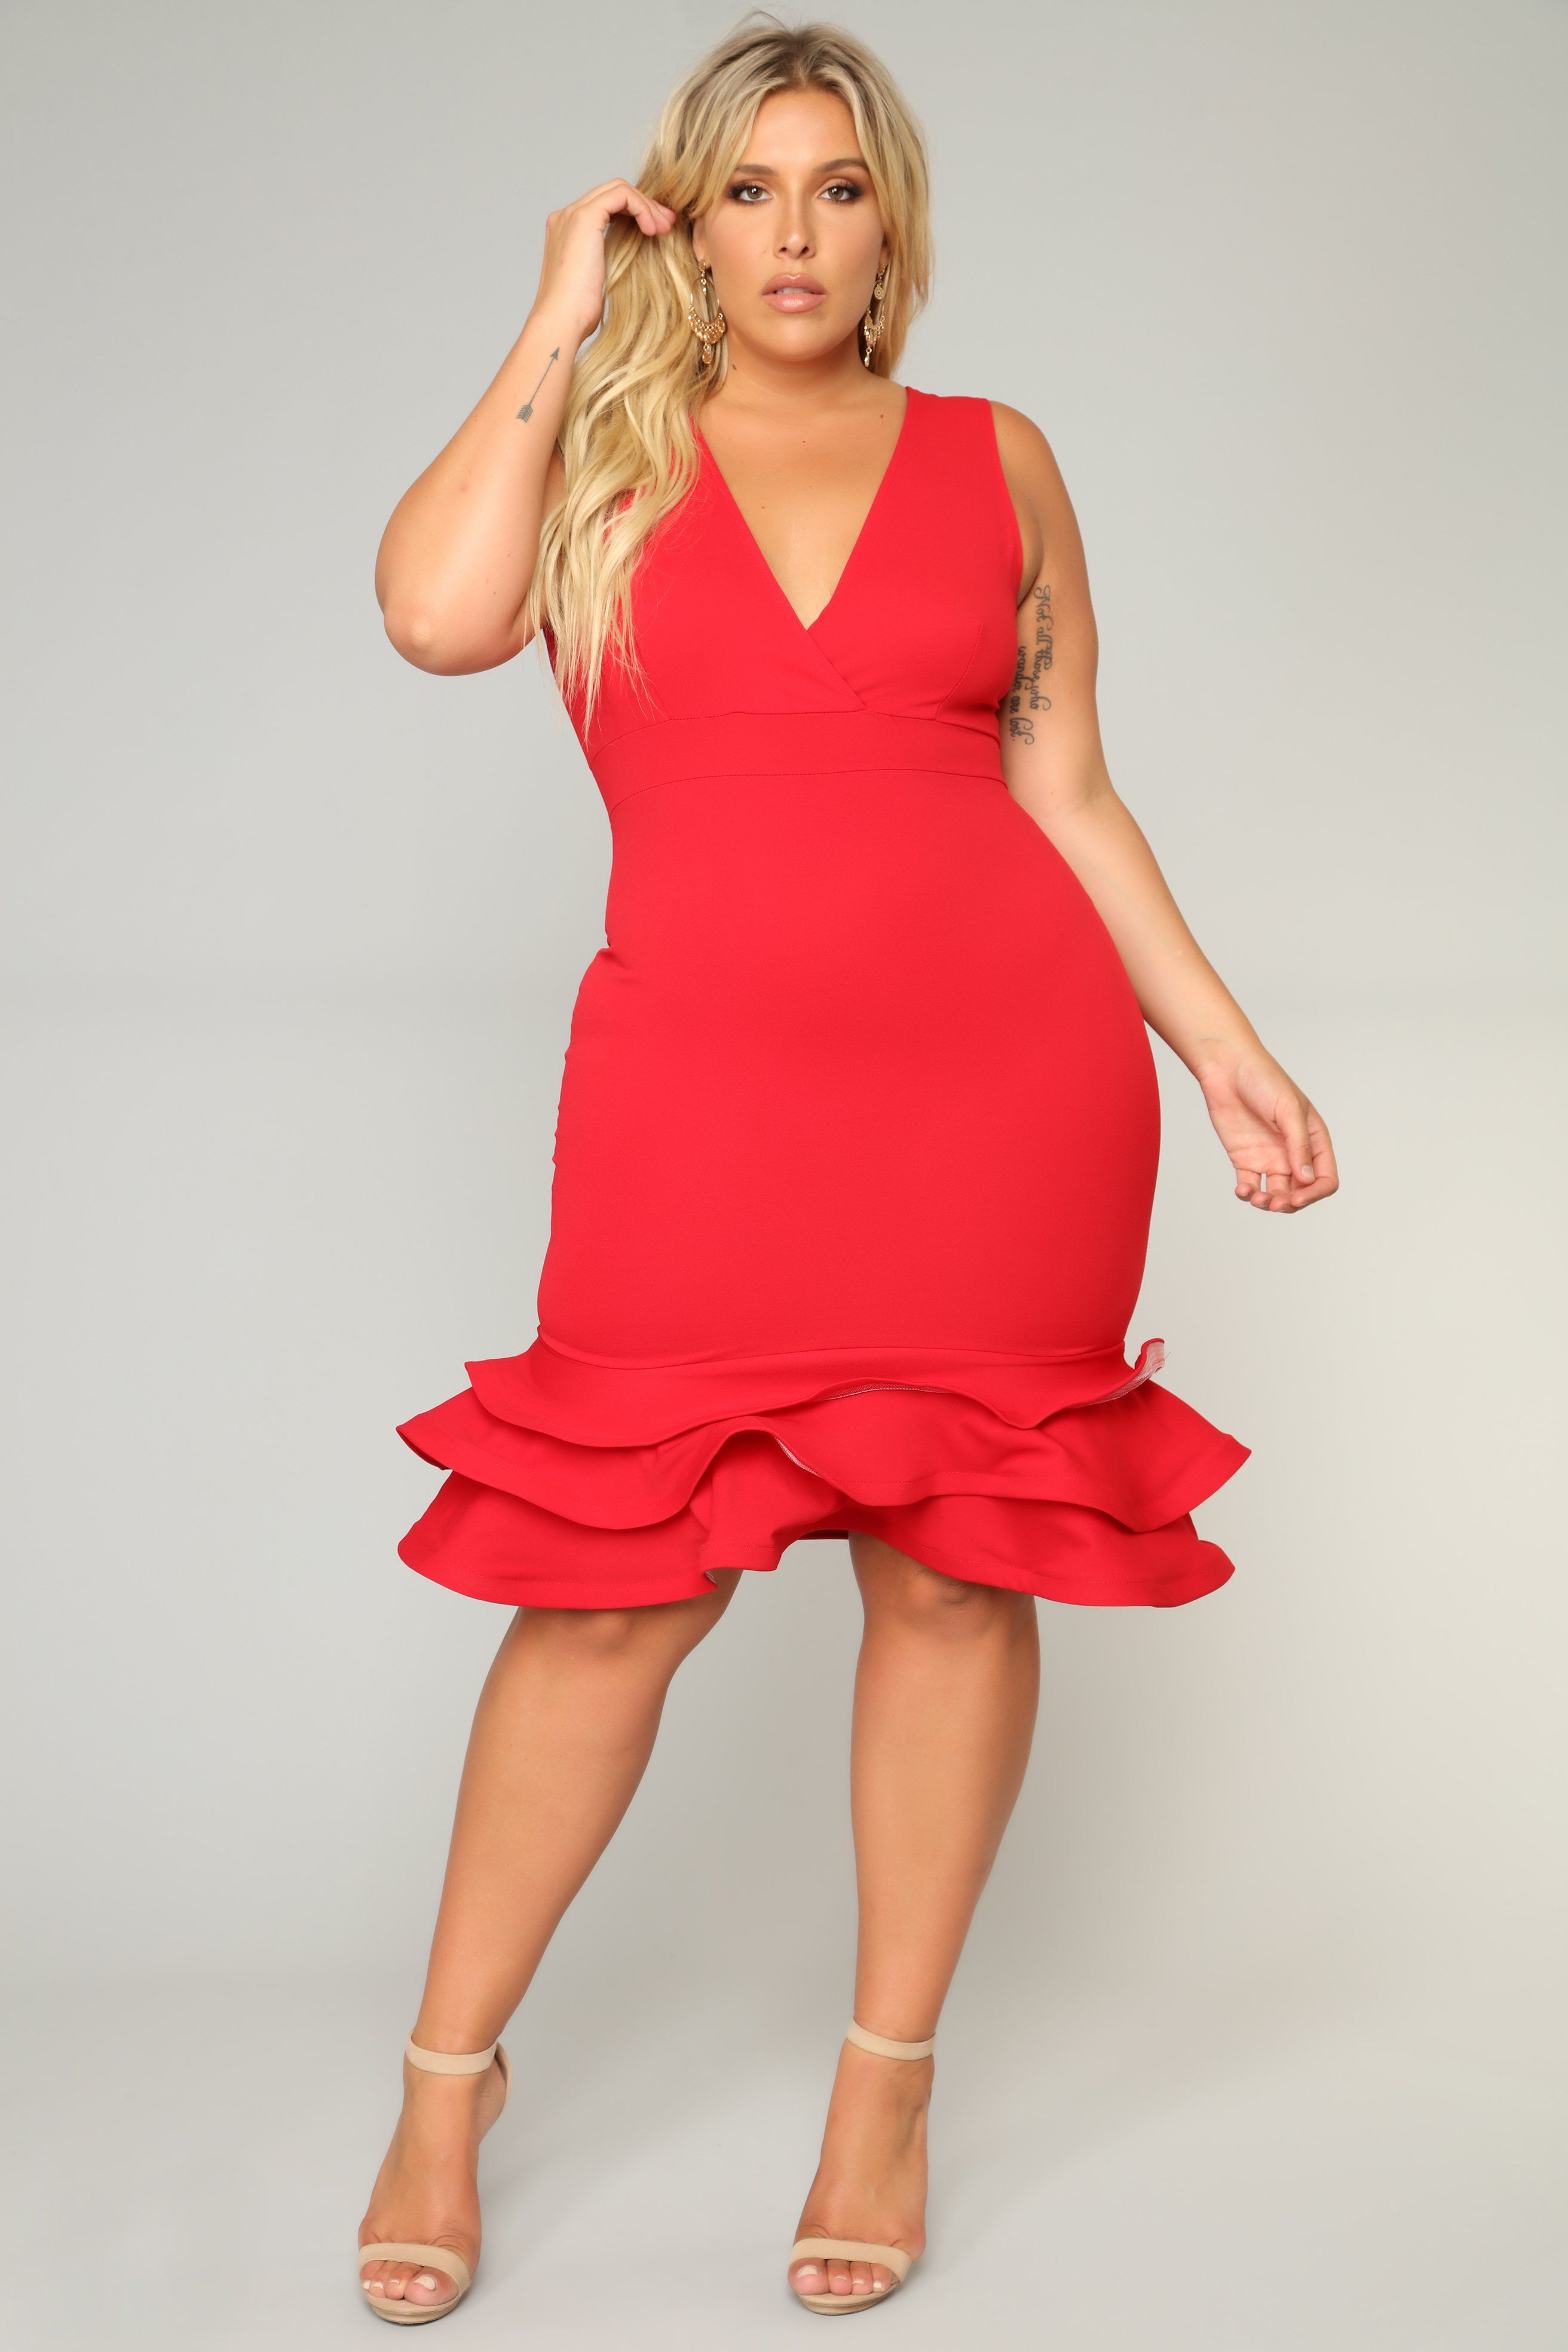 Dates with babe ruffle dress red plus size red dress